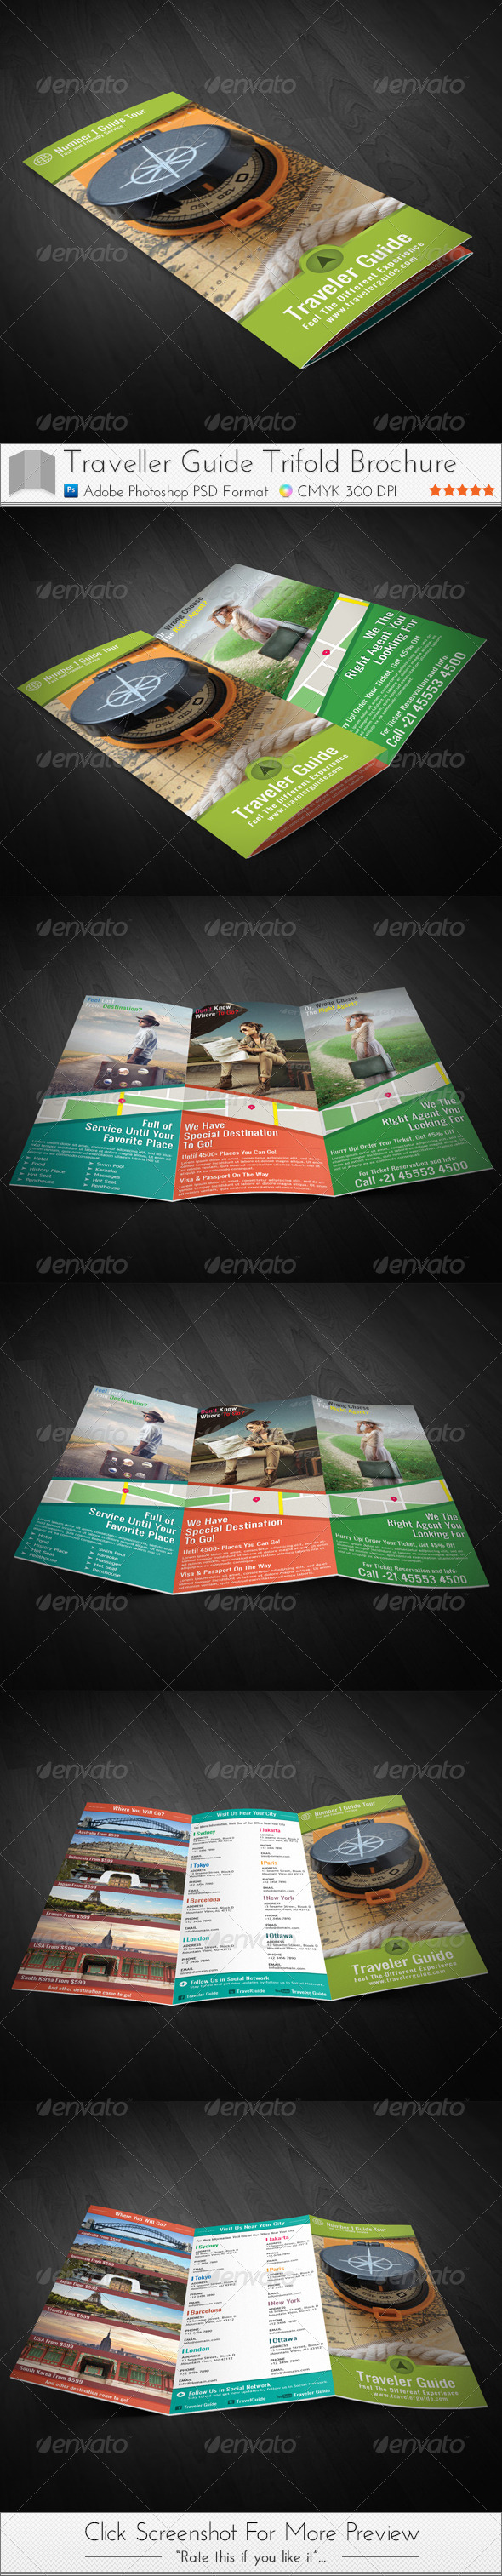 Traveler Guide Trifold Brochure - Brochures Print Templates